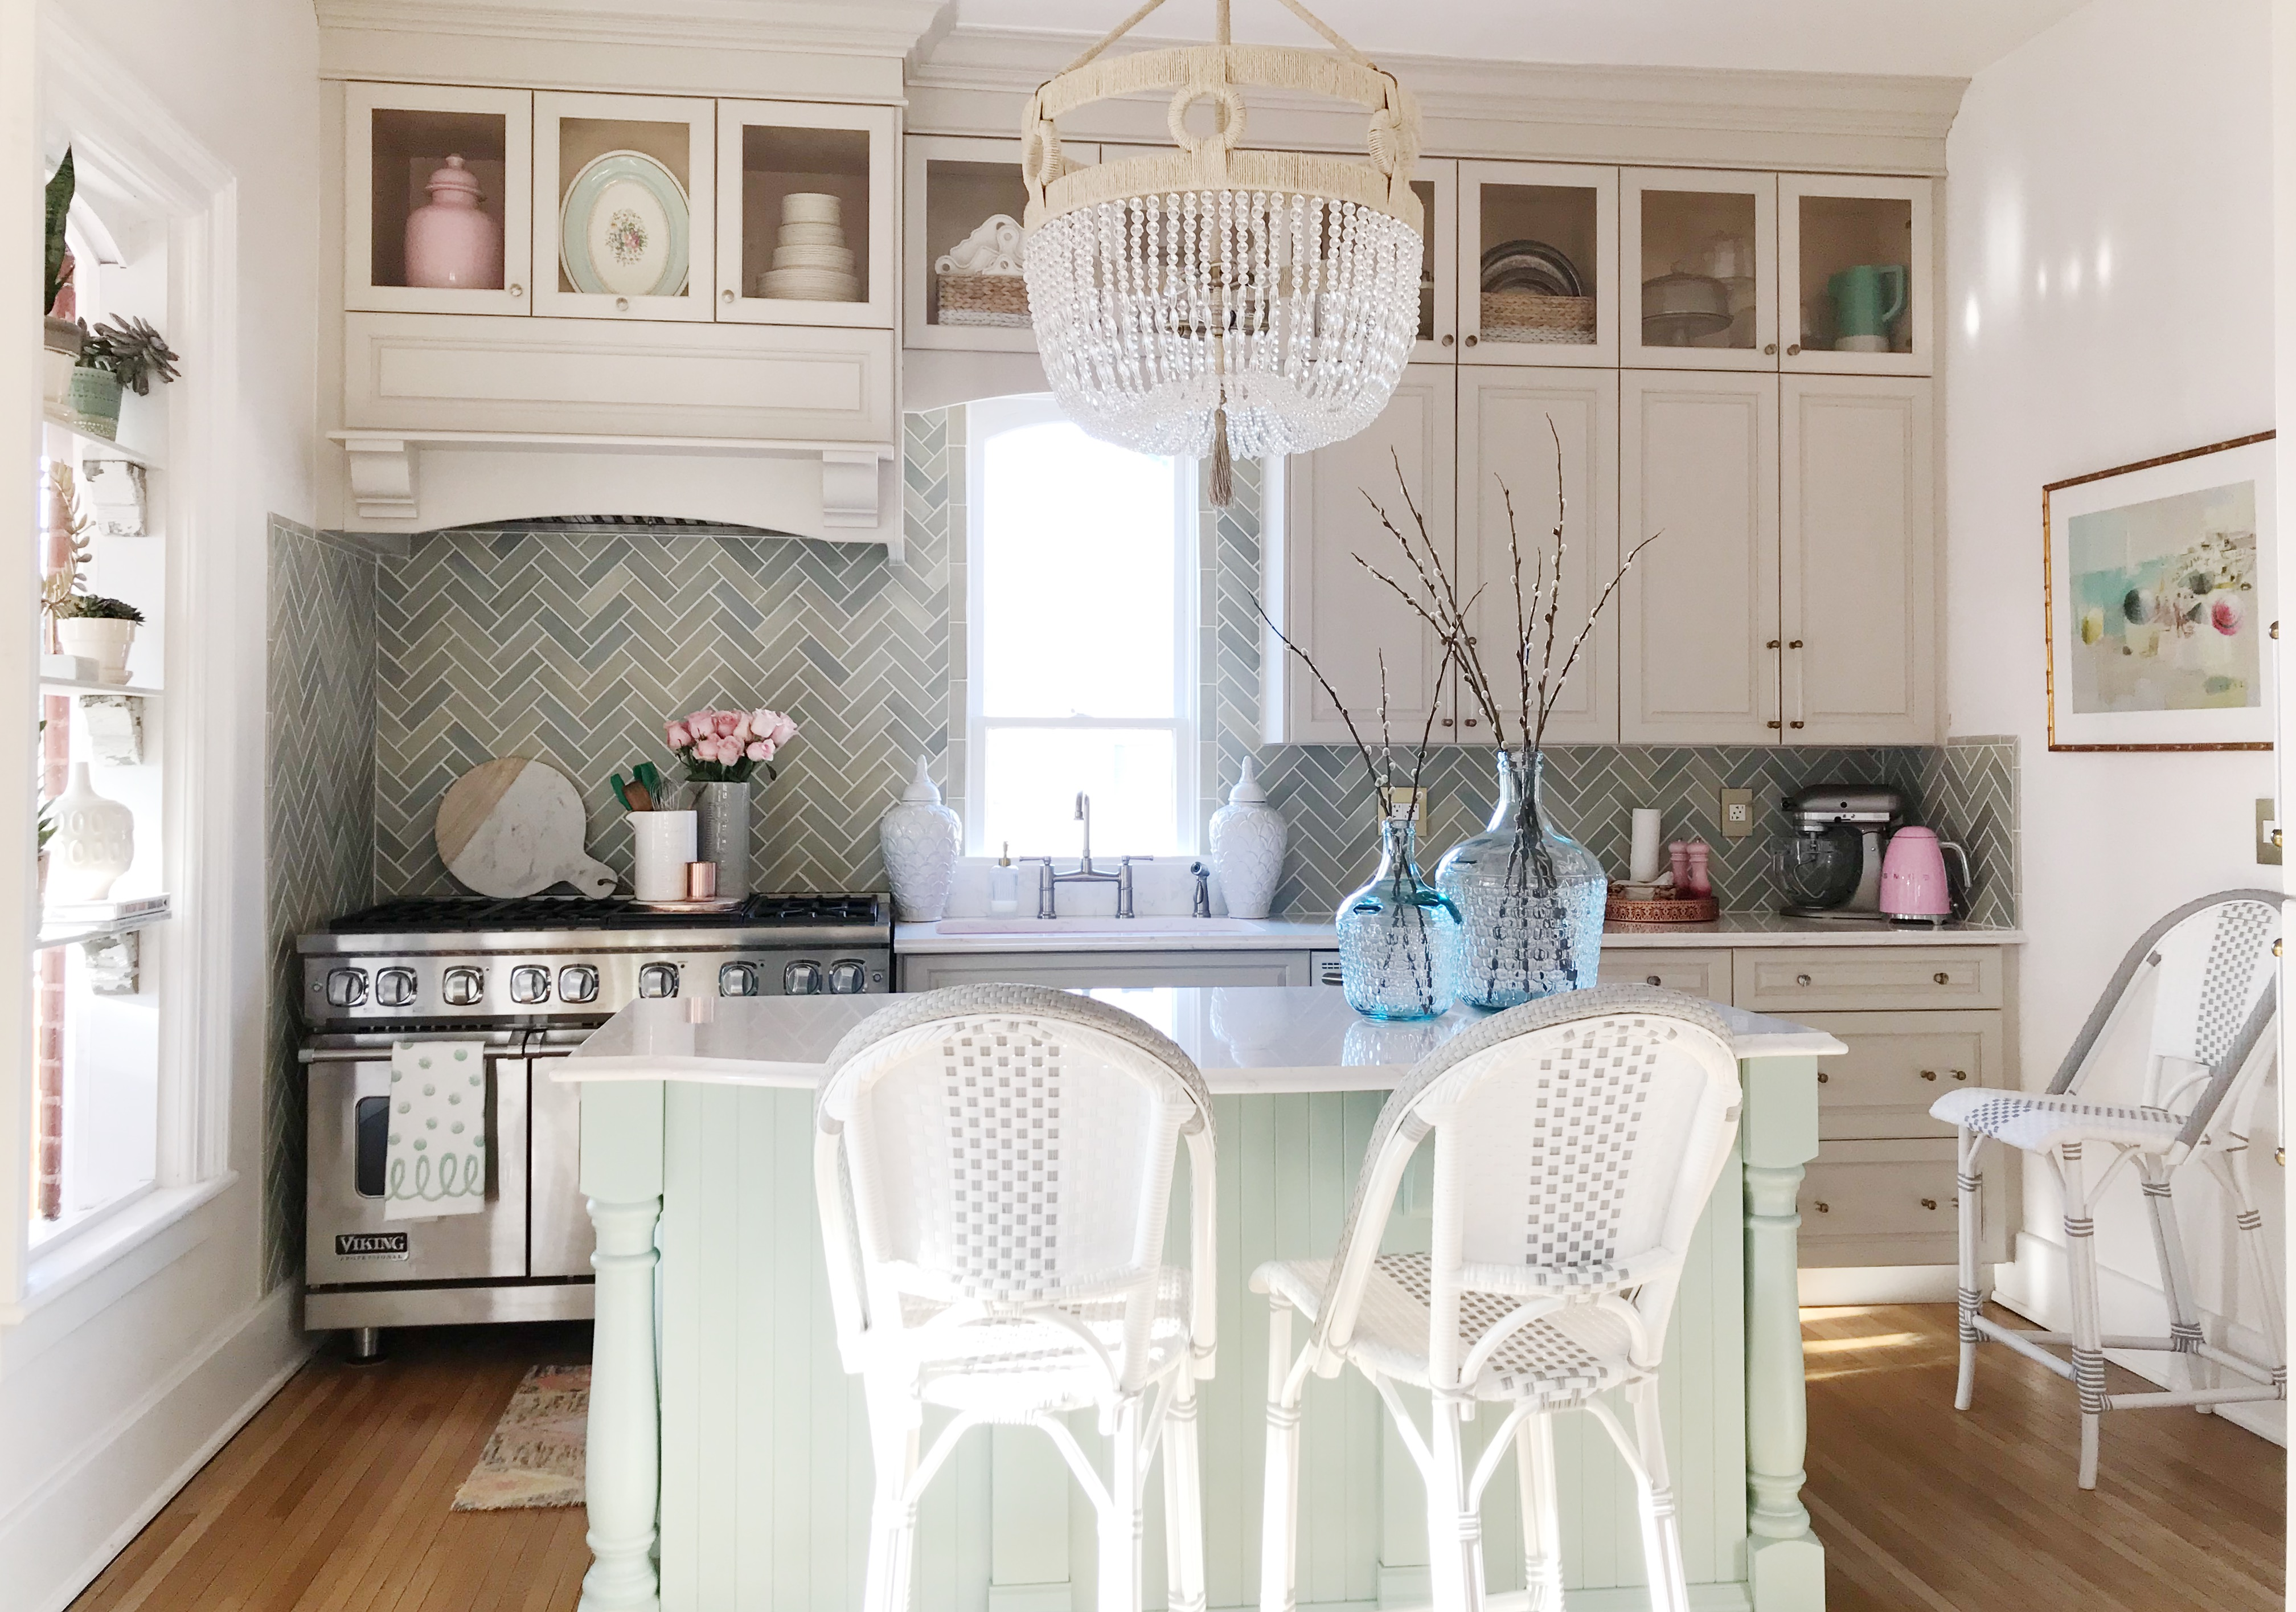 Kitchen Accessories And Decor How To Add Decor Accessories To Your Kitchen The Leslie Style